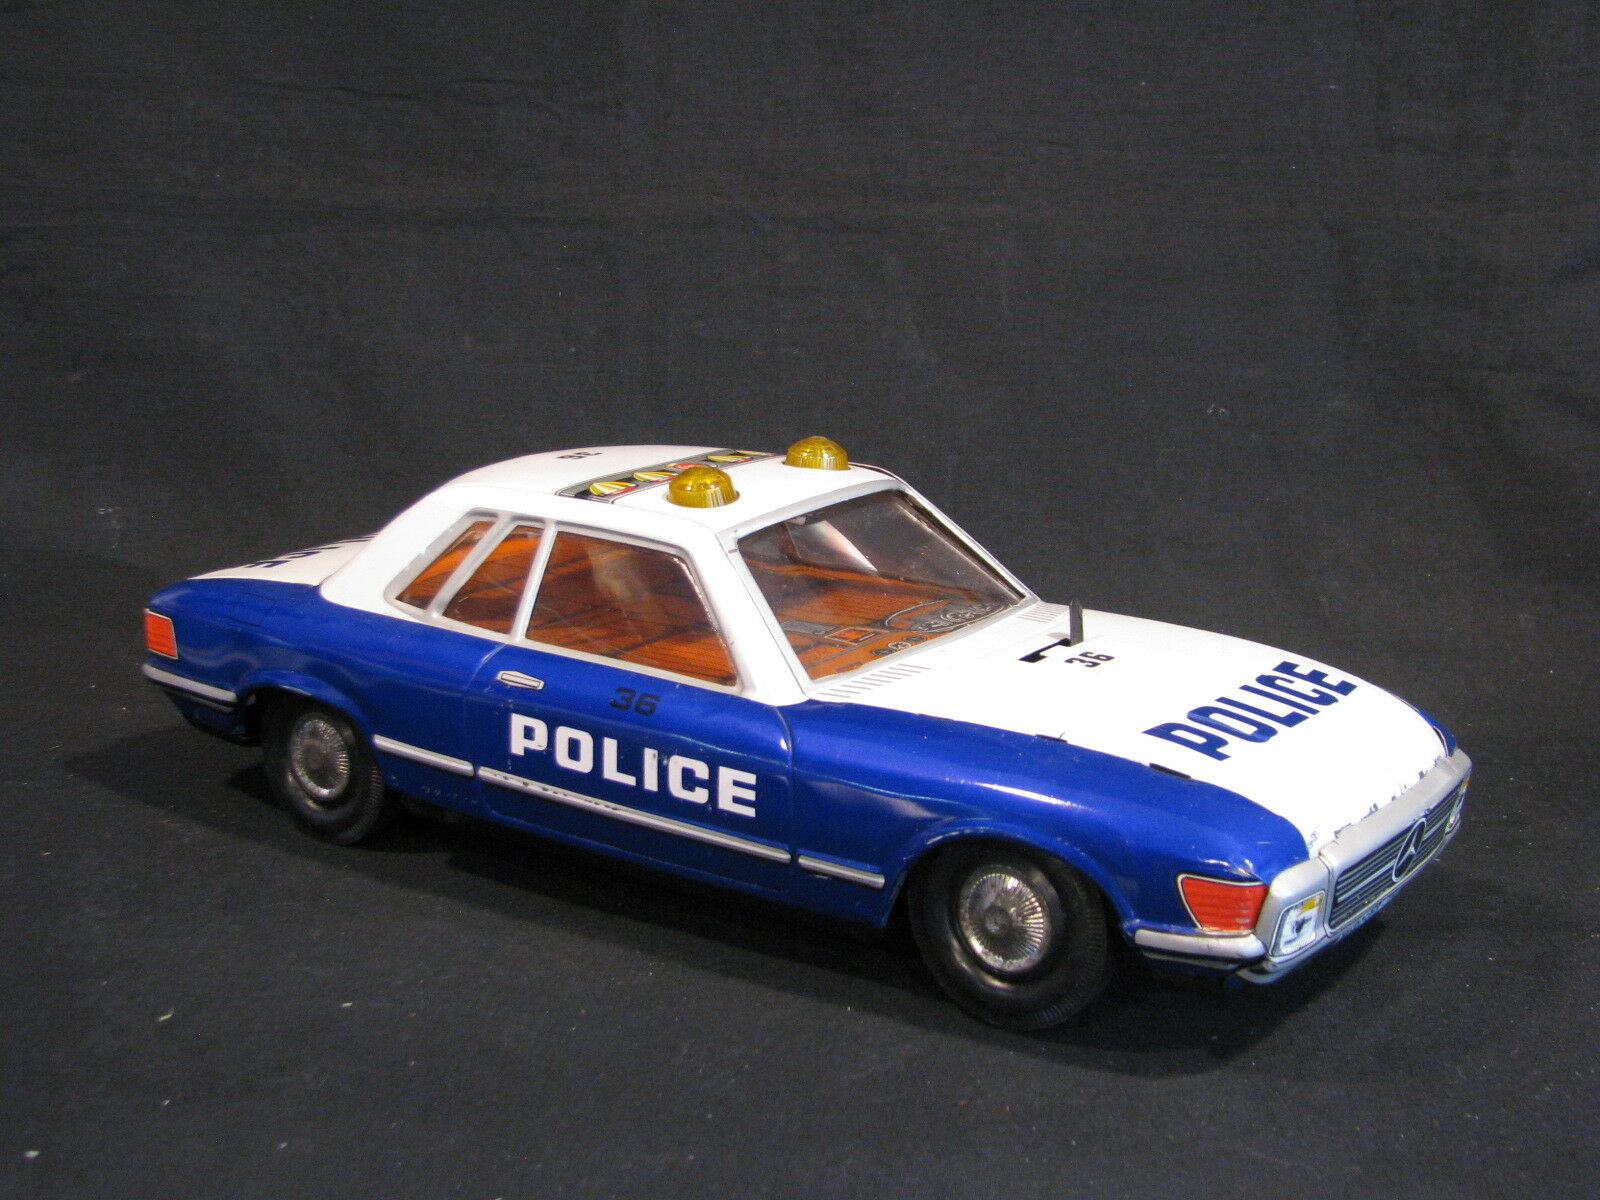 Paya Metal (Tin Plated) Mercedes-Benz Police Car 1 12 with Light and Sound (JS)